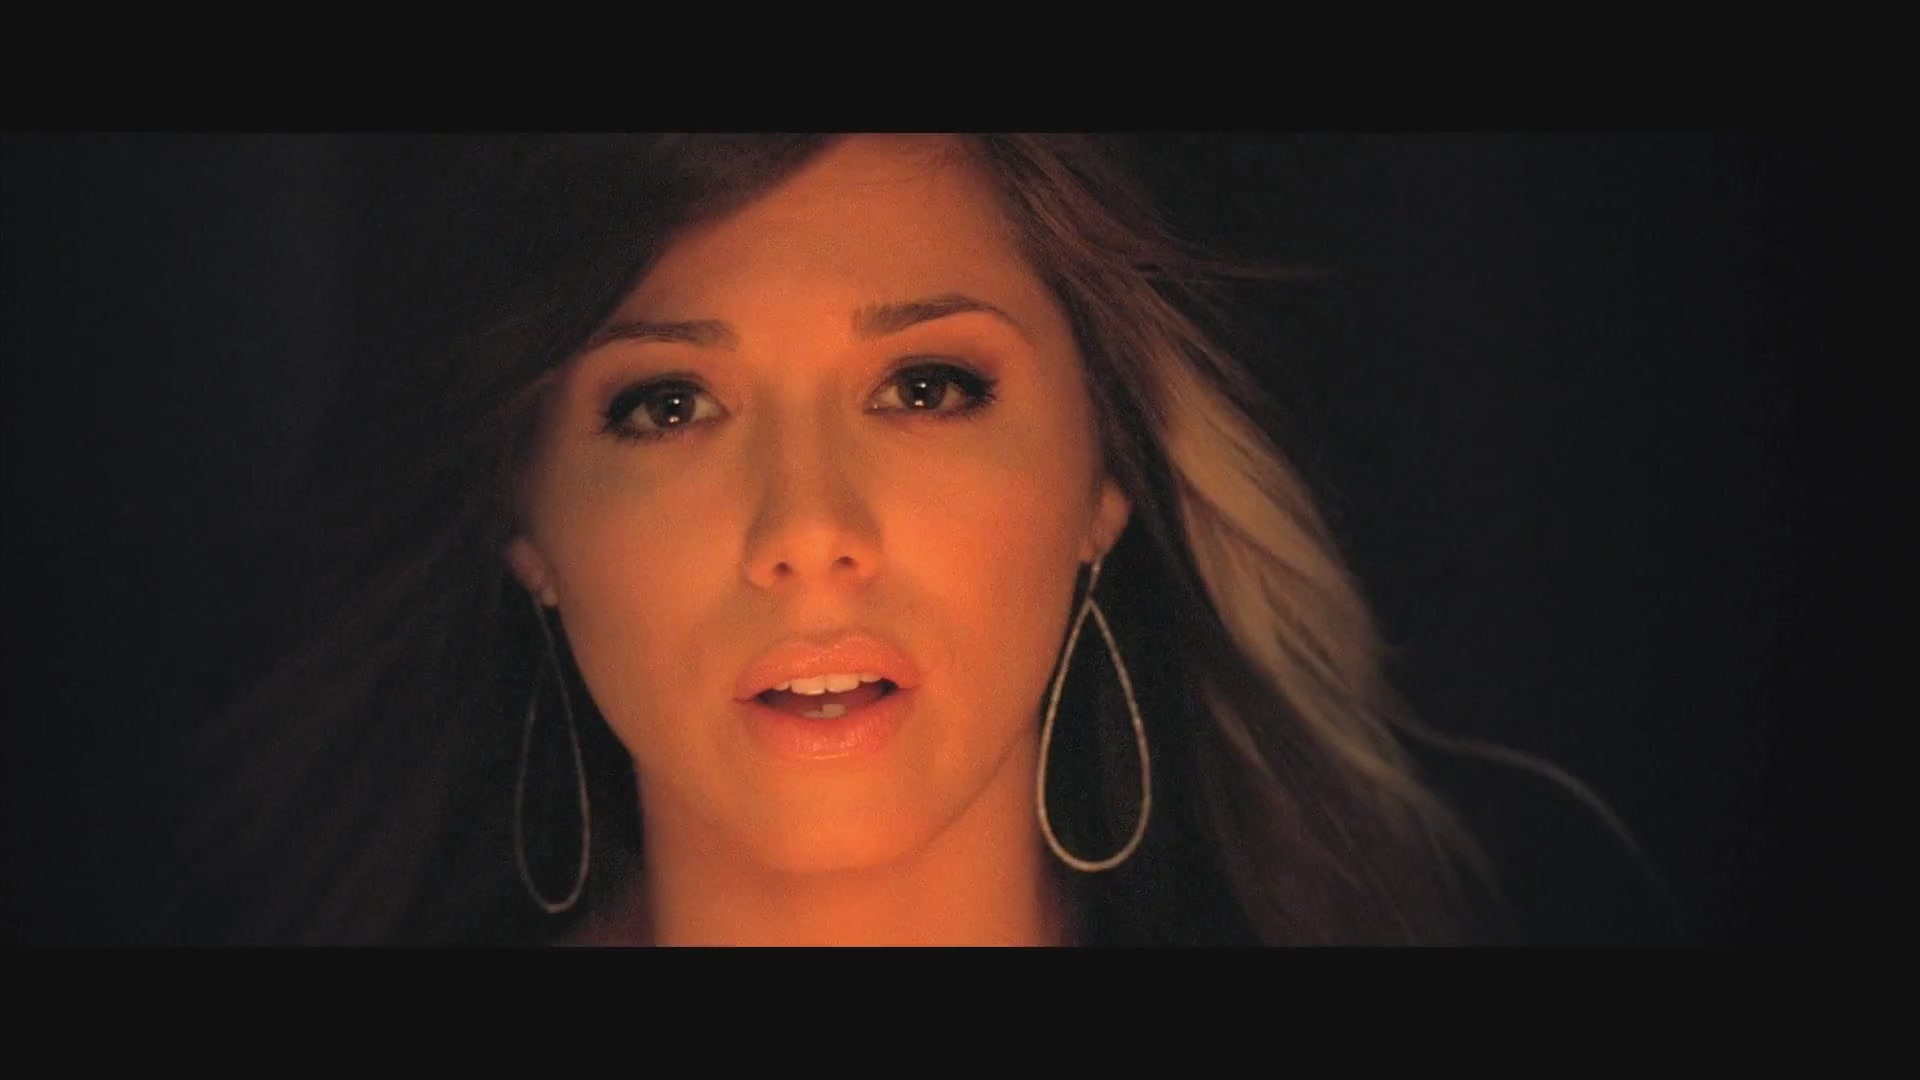 Image of a thousand years for fans of christina perri